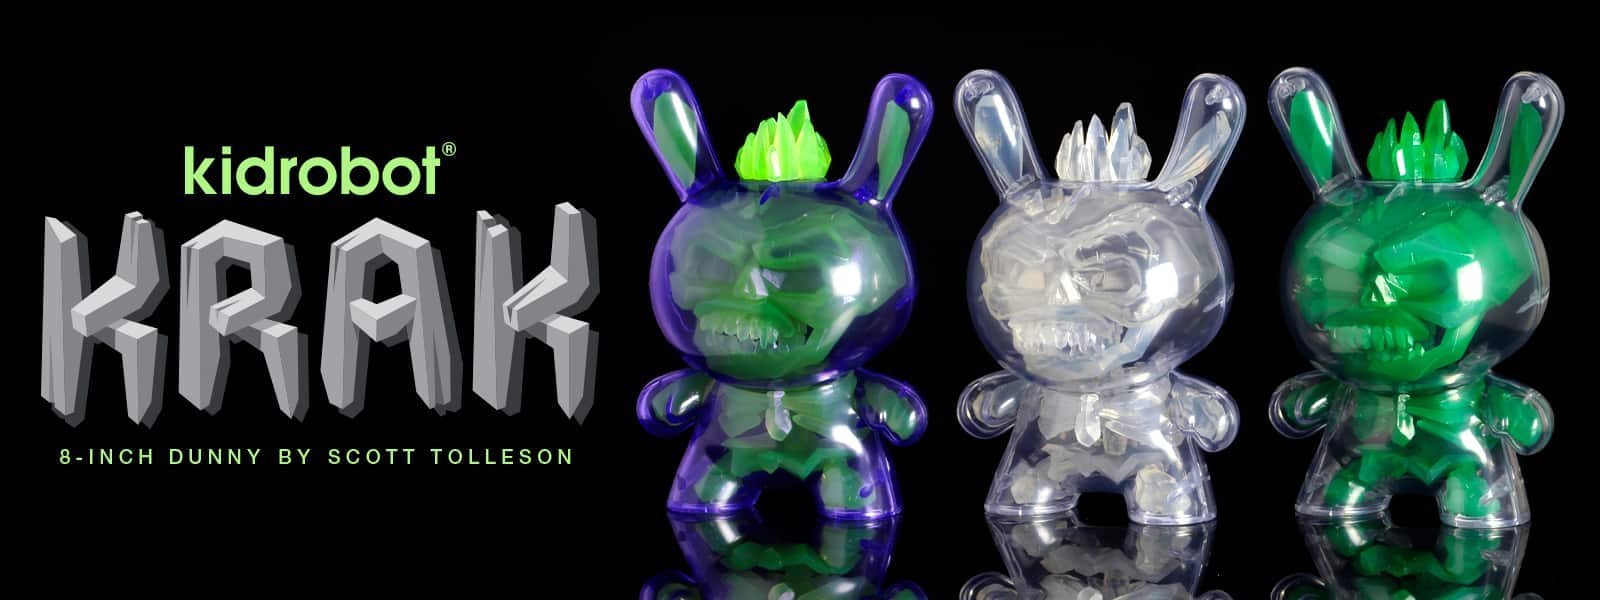 Kidrobot KRAK 8-inch Dunny Art Figures by Scott Tolleson